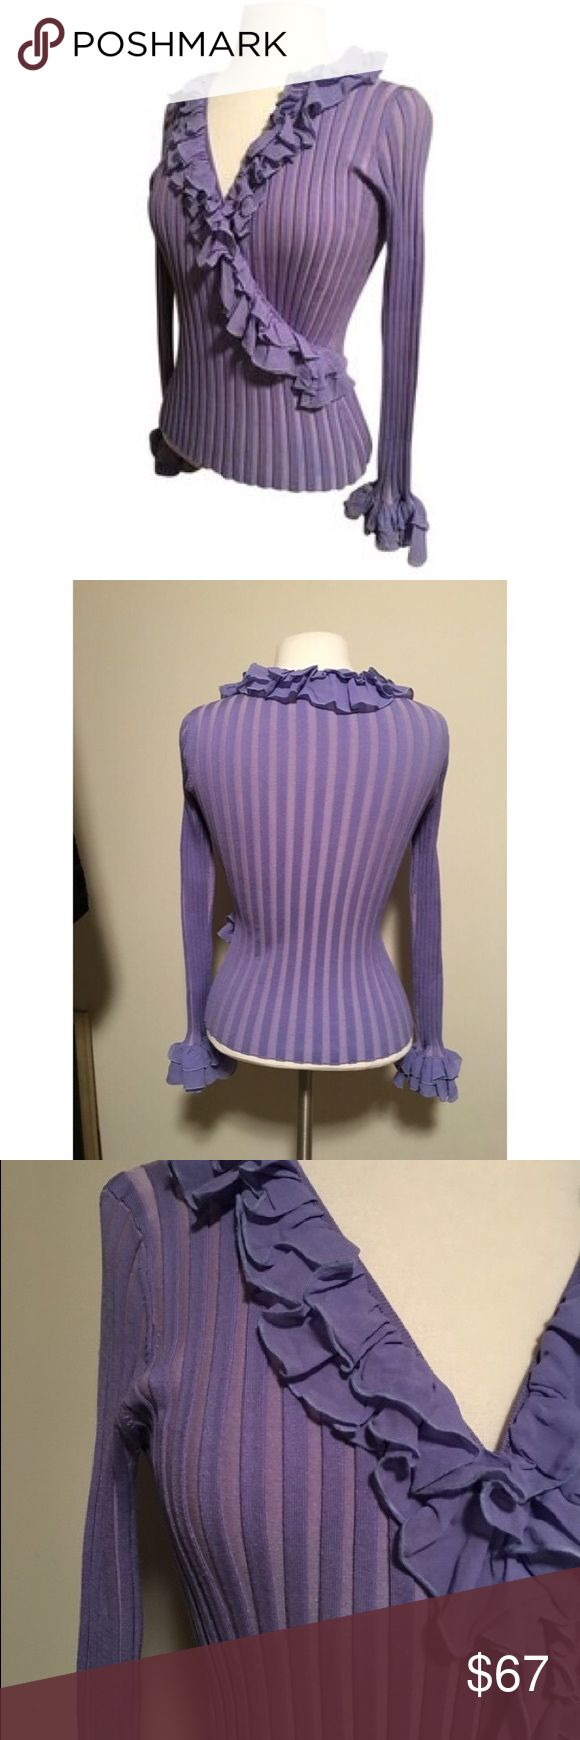 Belldini Purple Silk/ Spandex Double Ruffle ribbed Beautiful, fun ribbed, wrap double ruffled front and cuffs, fitted - great with skirt, pants or jeans! Comfortable, extremely flattering fit, sexy 75% silk 19% nylon 8% spandex - hand wash cold Belldini Sweaters V-Necks